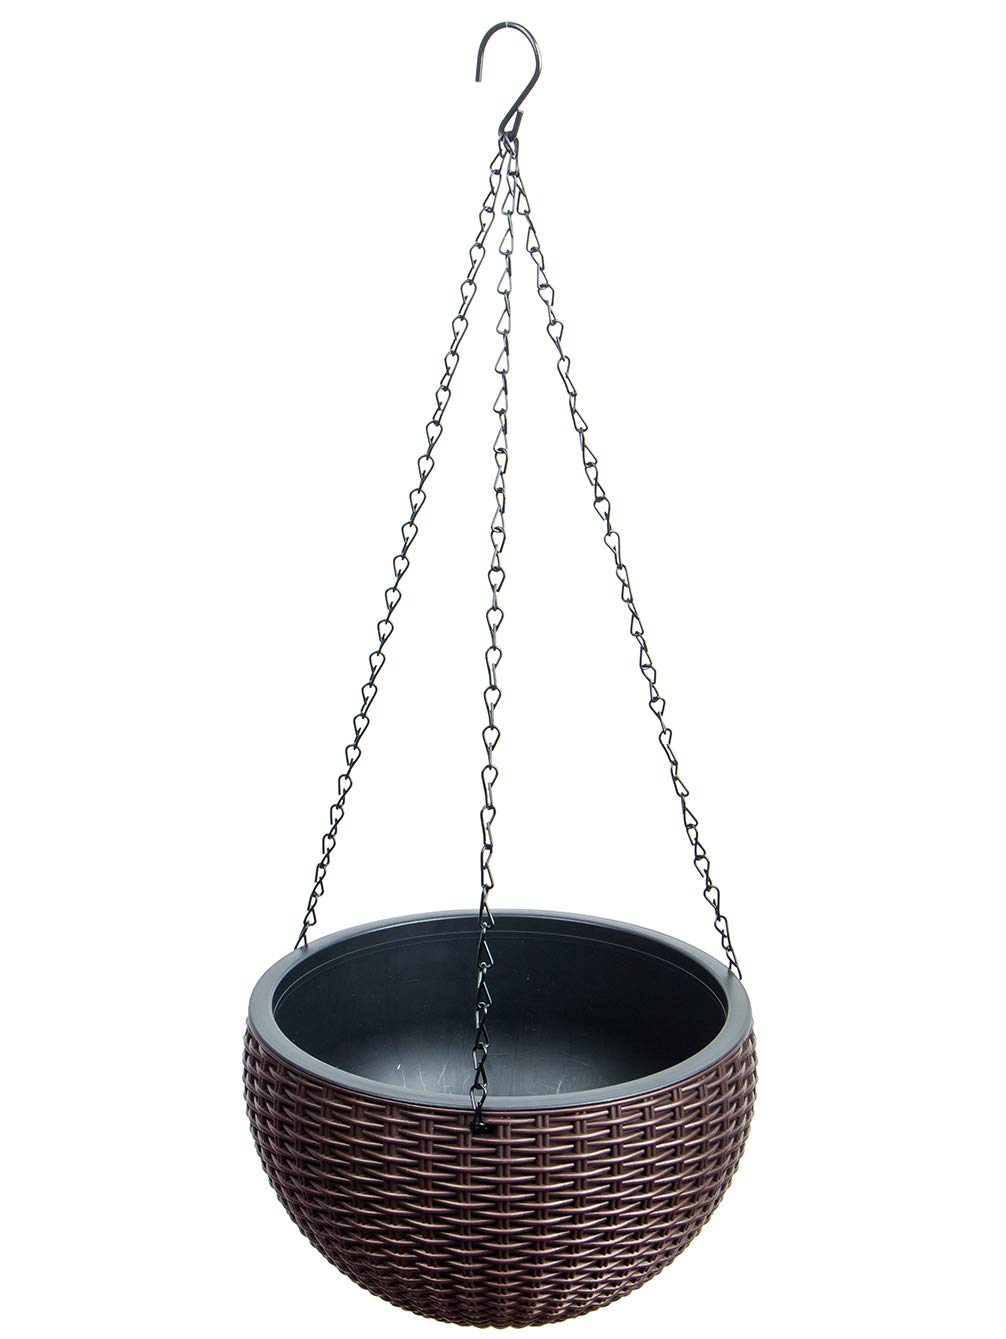 Foraineam 10.2 Inches Round Basket Hanging Planter Dual-pots Design Garden Flower Plant Pots Hanging Planter Baskets with Drainer and Chain for Indoor Outdoor Use